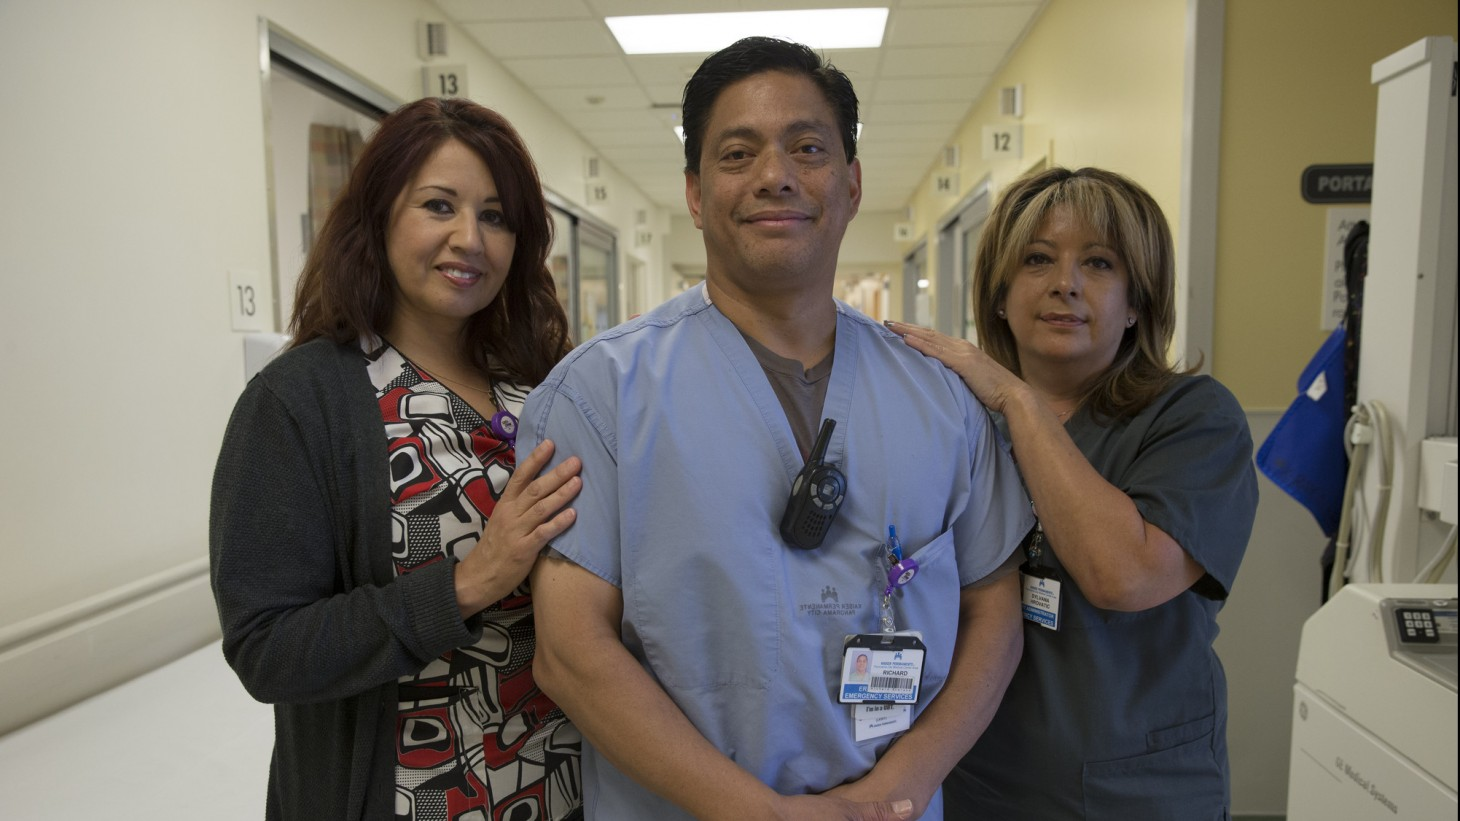 three health care workers posing together